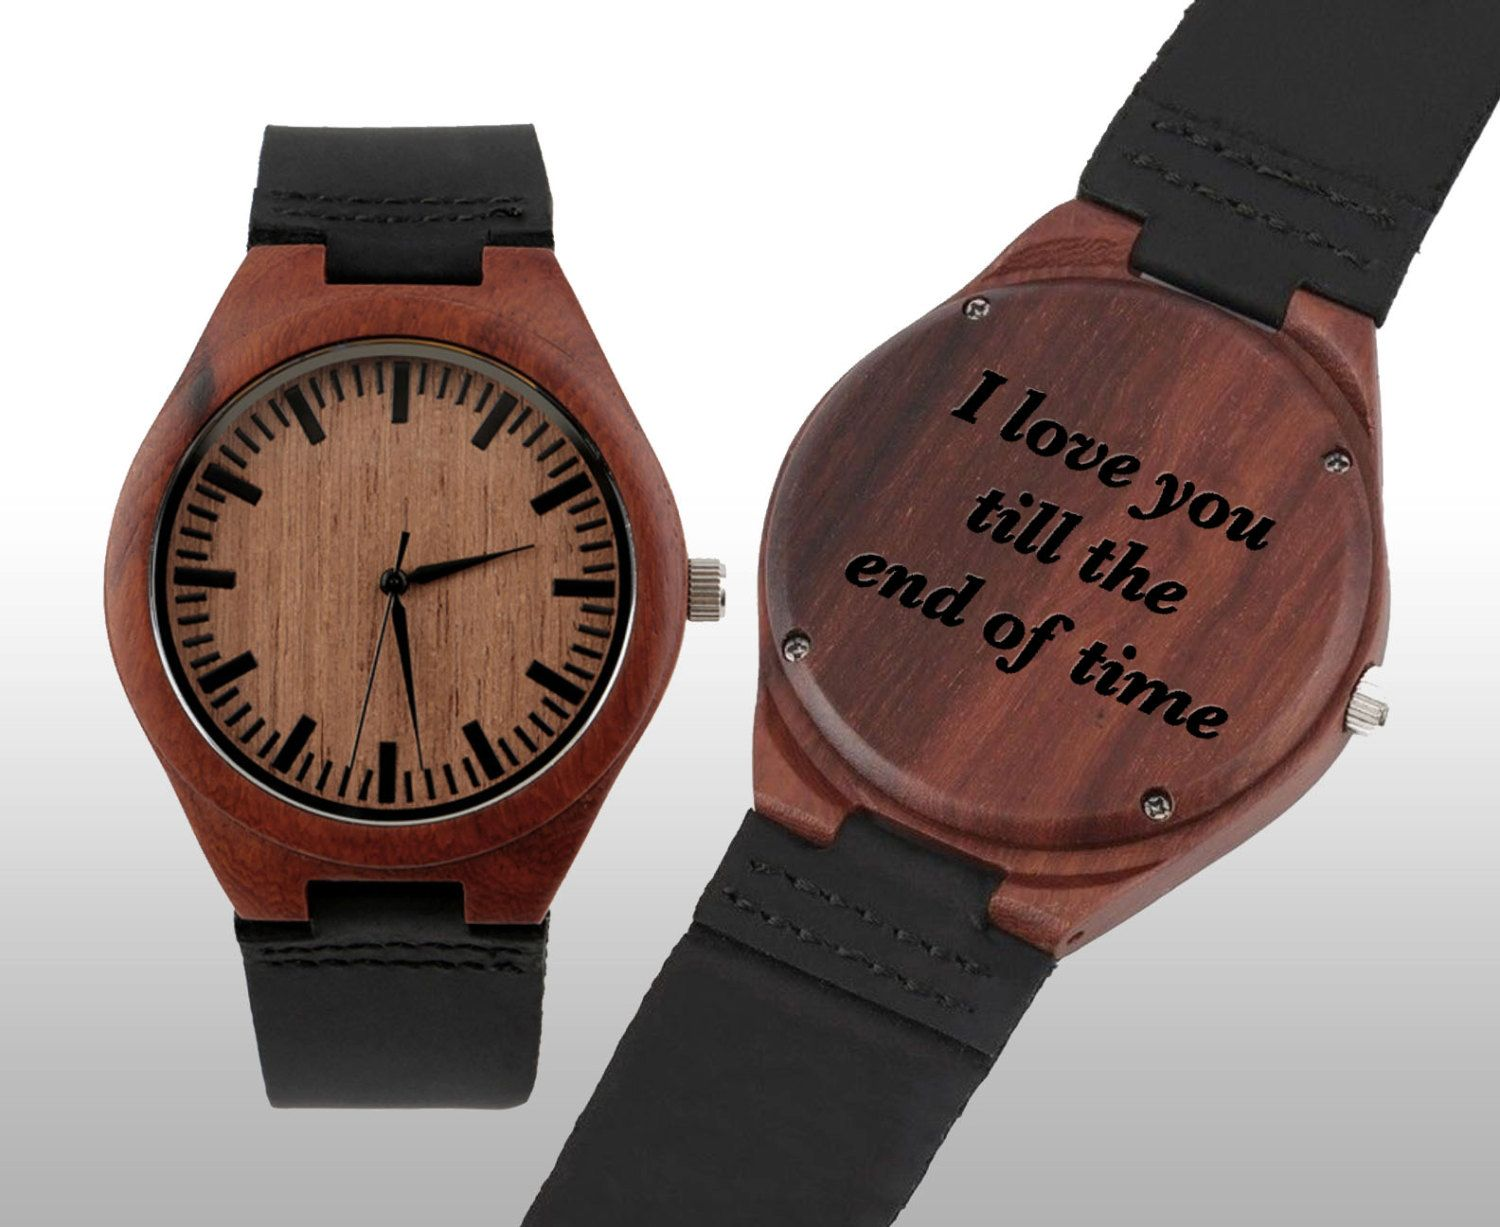 Fathers Day Gift Fathers Day Gifts Engraved Watch Wood Watch Engraved Wood Watch Wooden Watch L Watch Engraving Engraved Wood Watch Wooden Watch Engraved